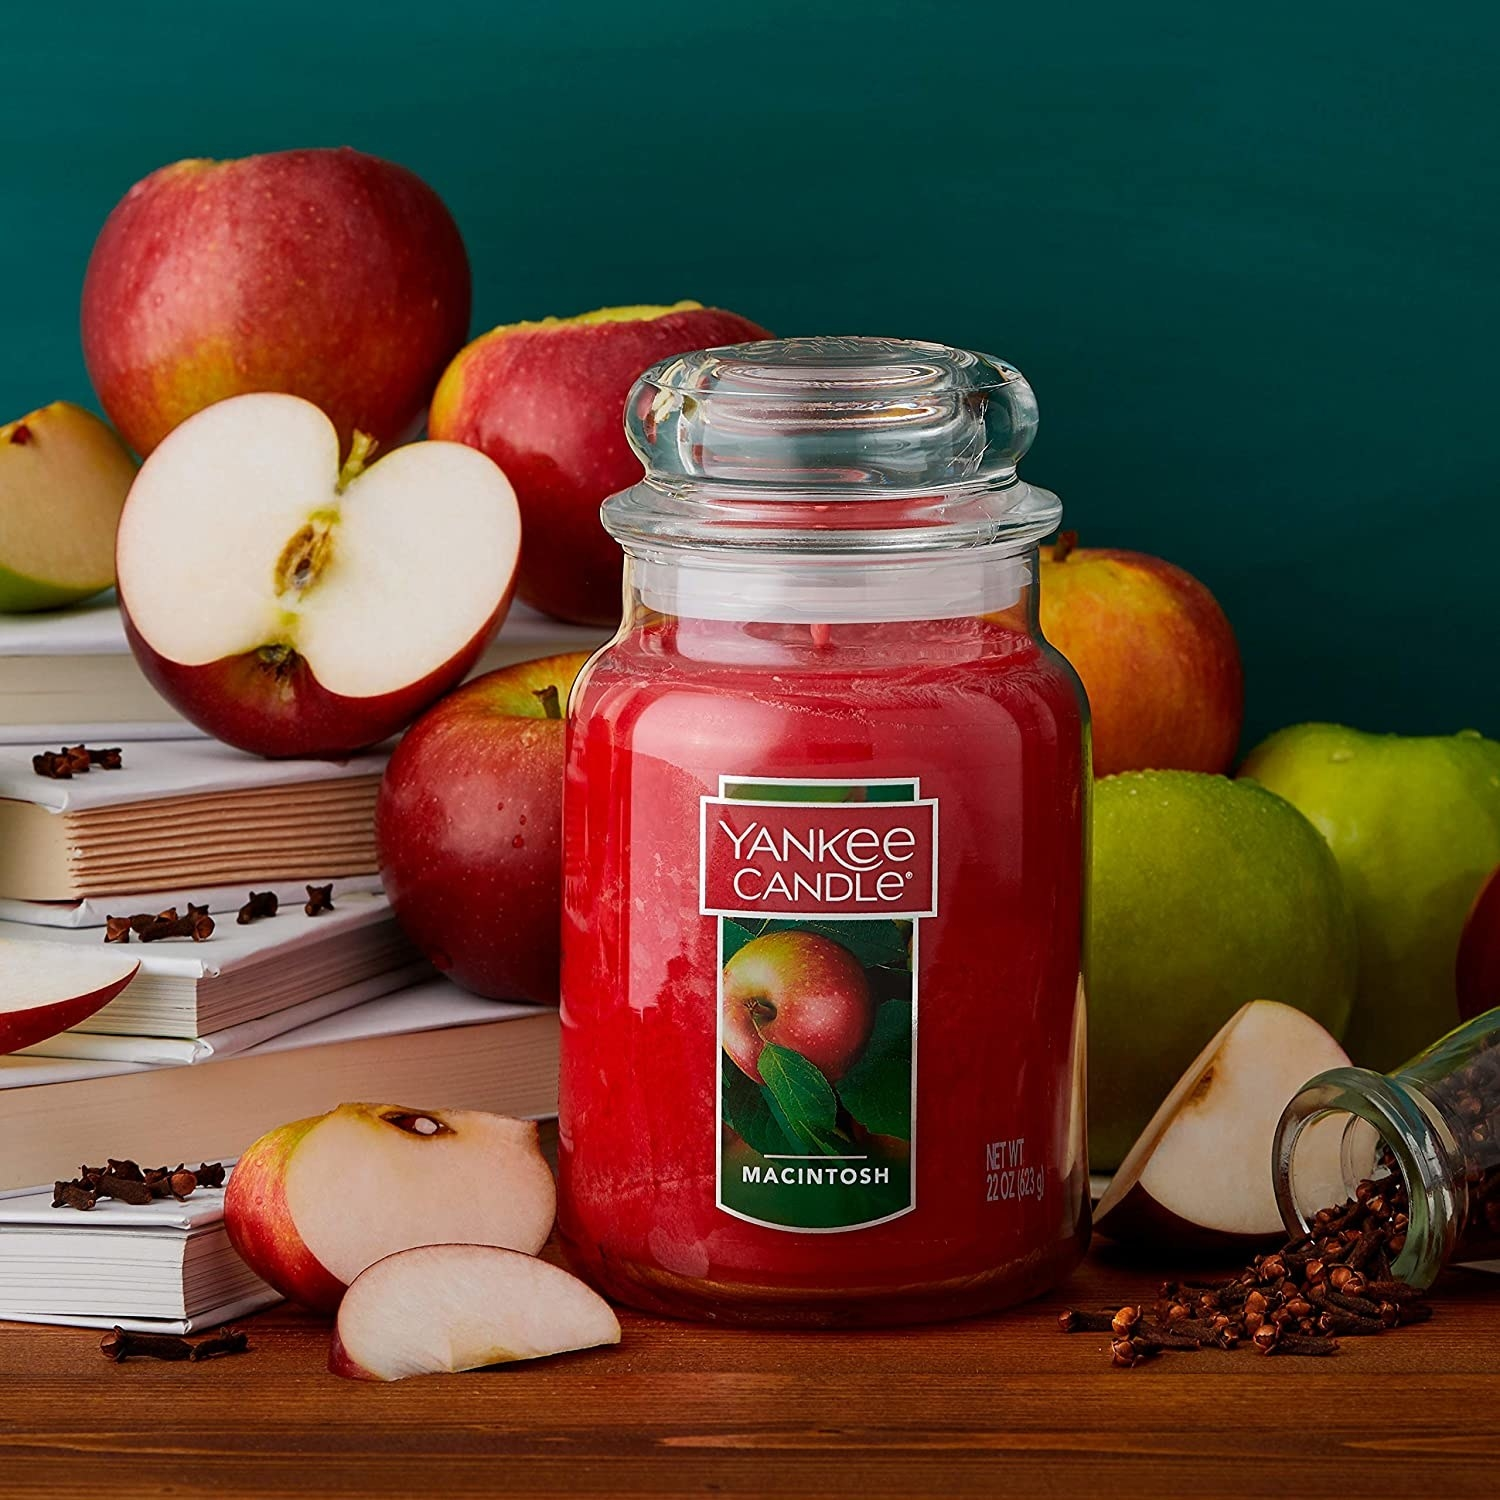 a big red candle in a glass jar with an apple on the label